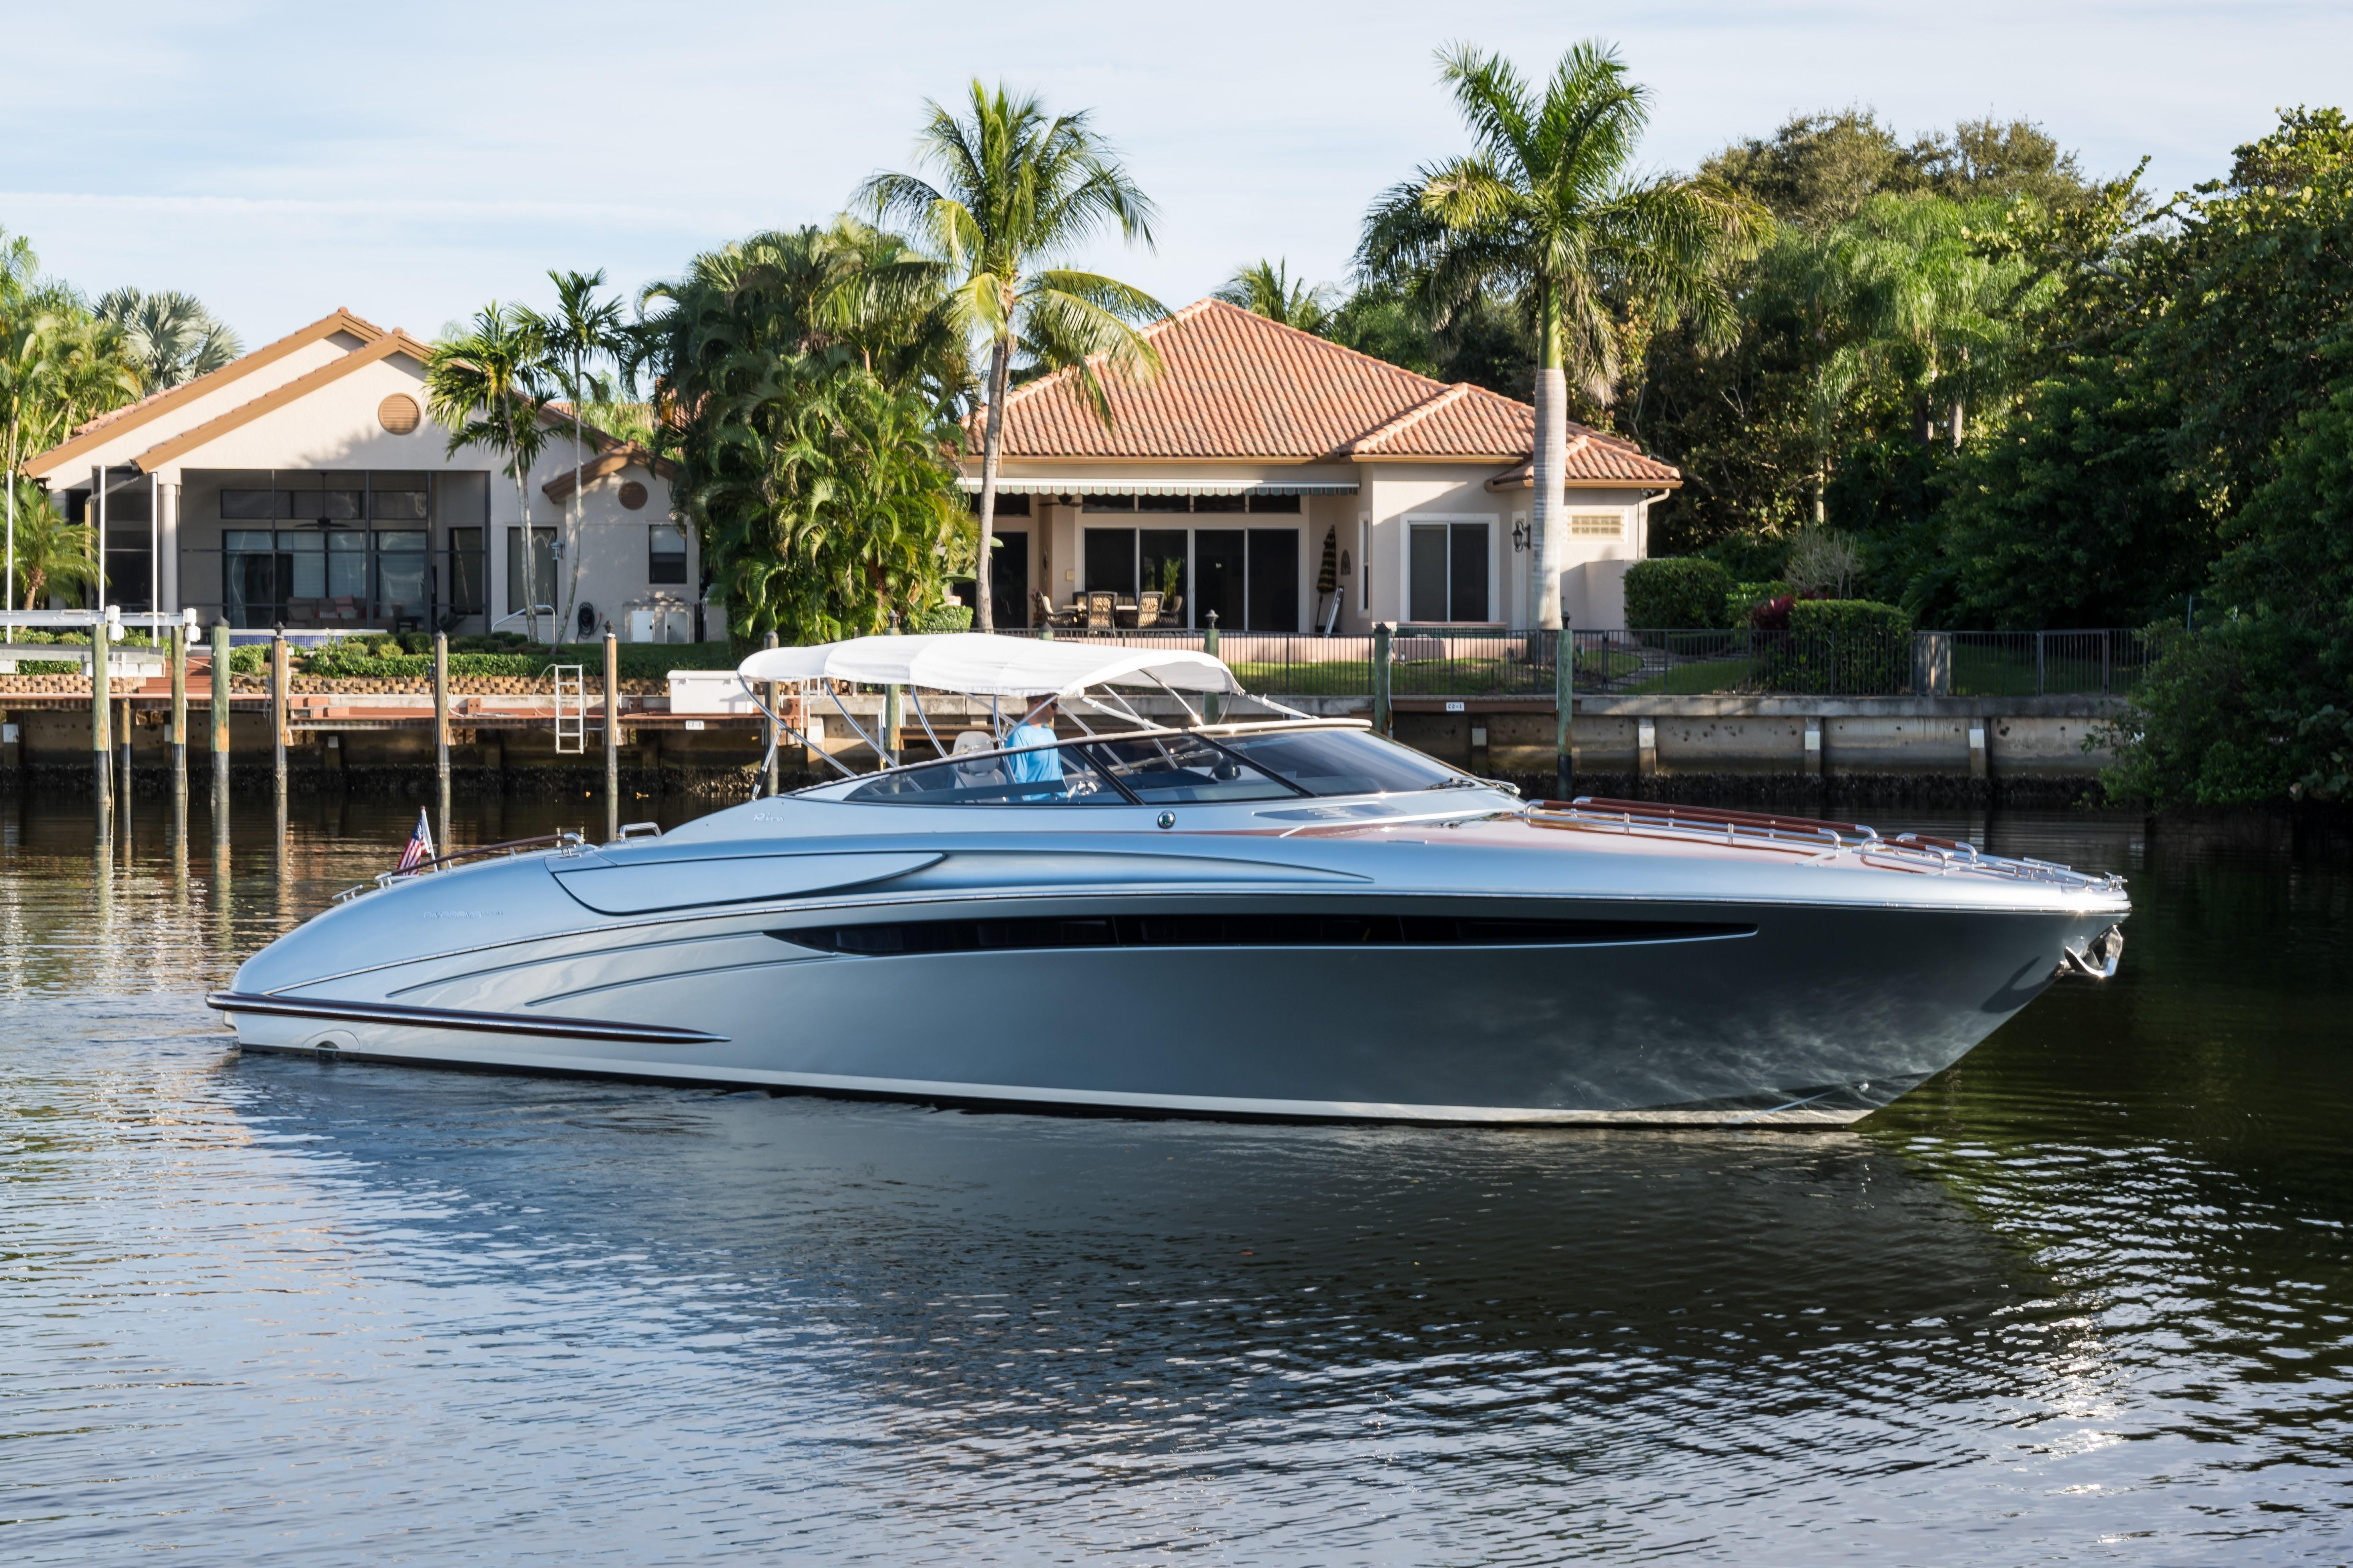 2014 44' Riva Starboard Profile With Bimini Top Up